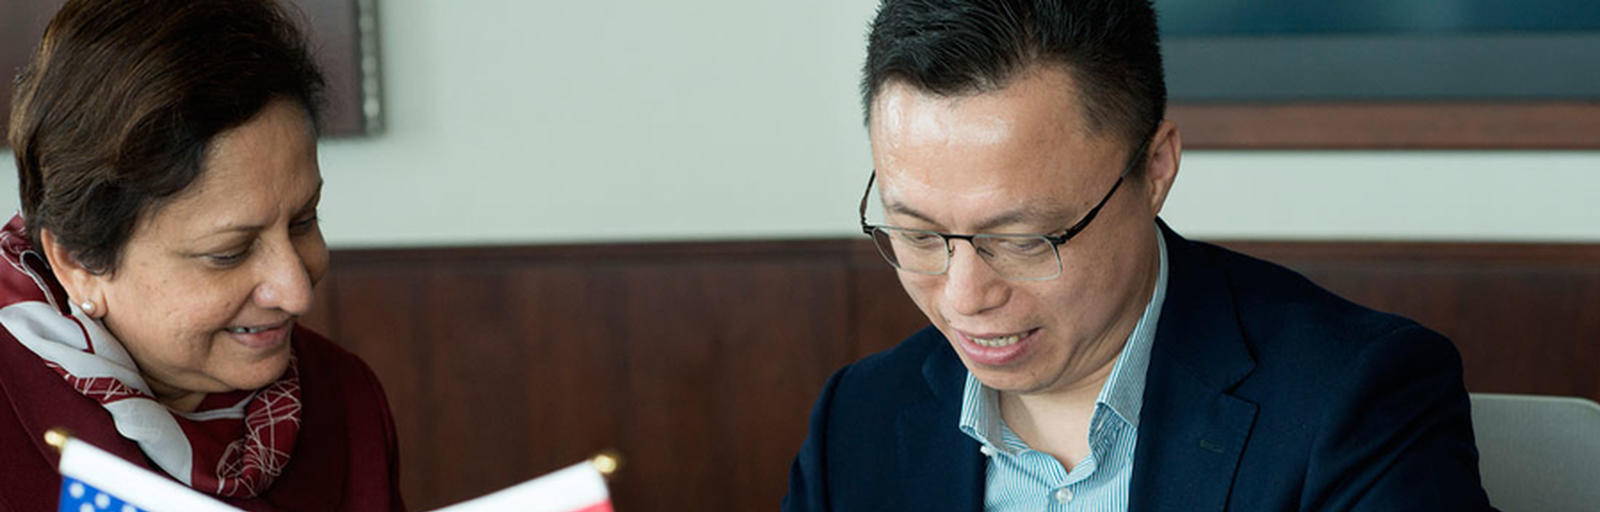 Ant Financial Services President Eric Jing Makes $5 Million